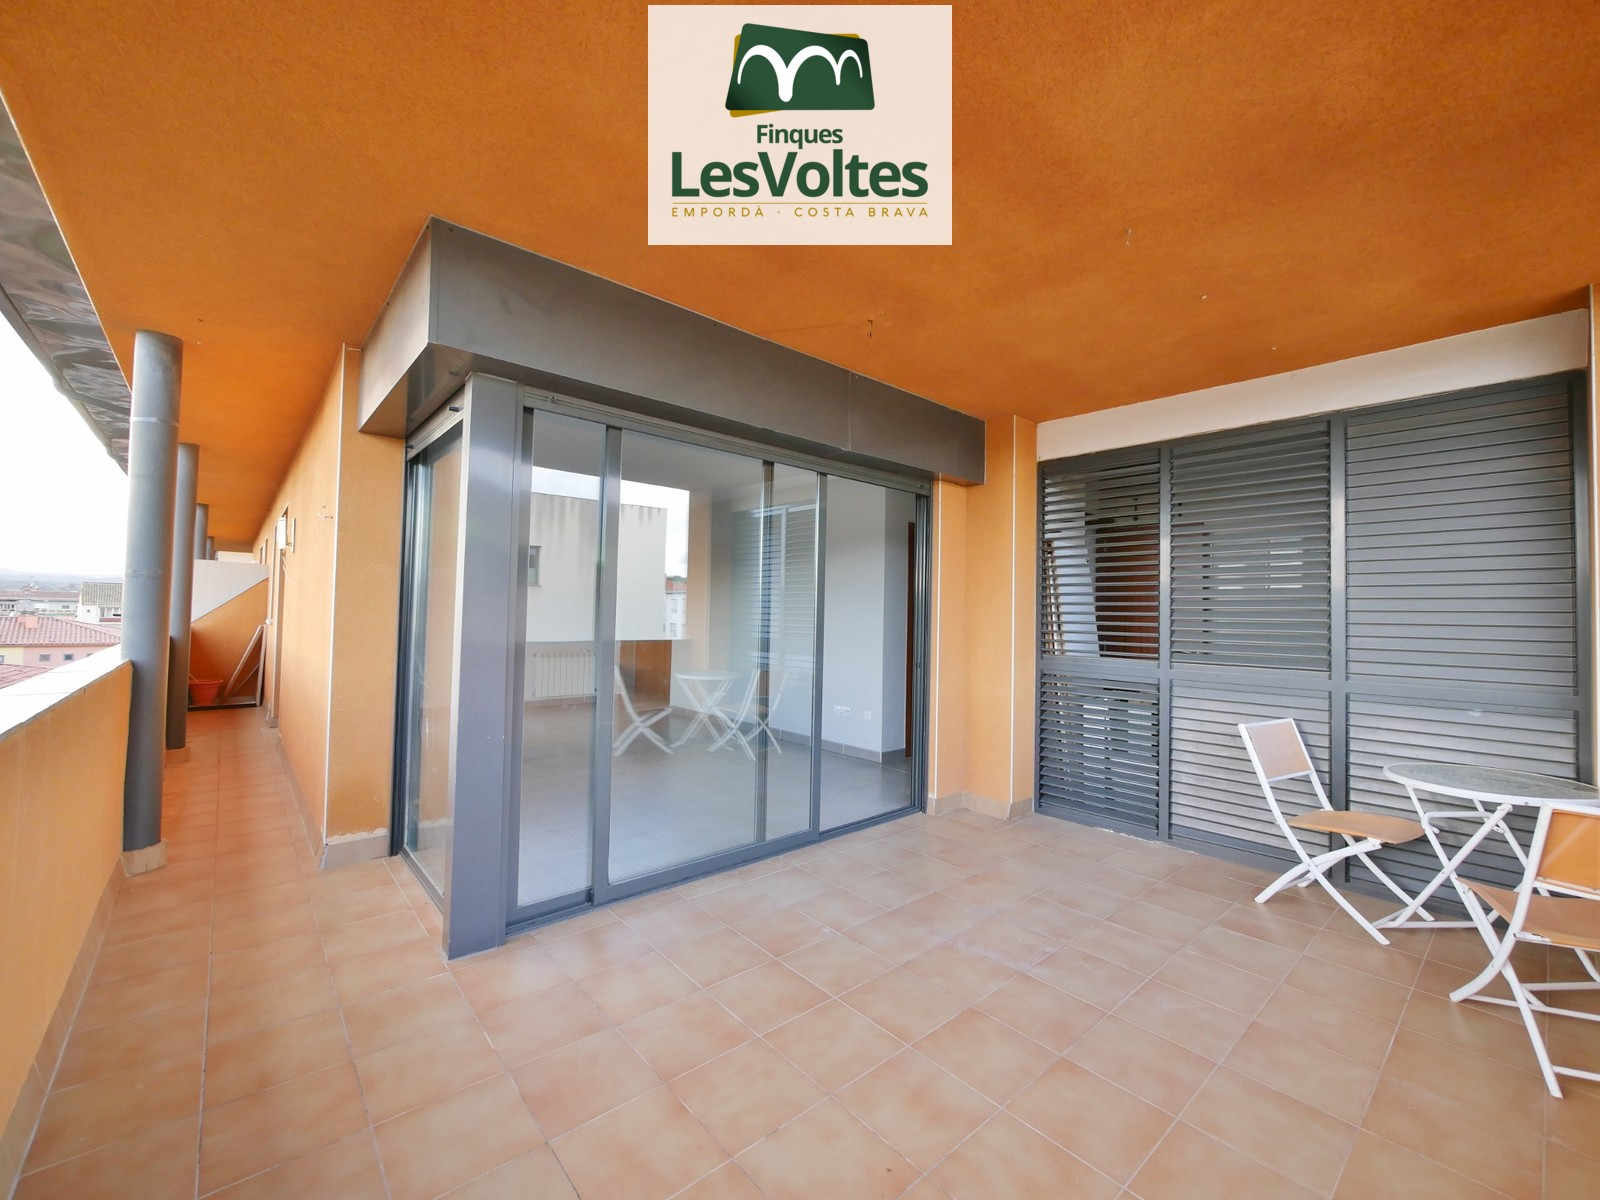 PENTHOUSE OF 90 M2 WITH ELEVATOR AND TERRACE WITH VIEWS FOR SALE IN LA BISBAL D'EMPORDÀ.